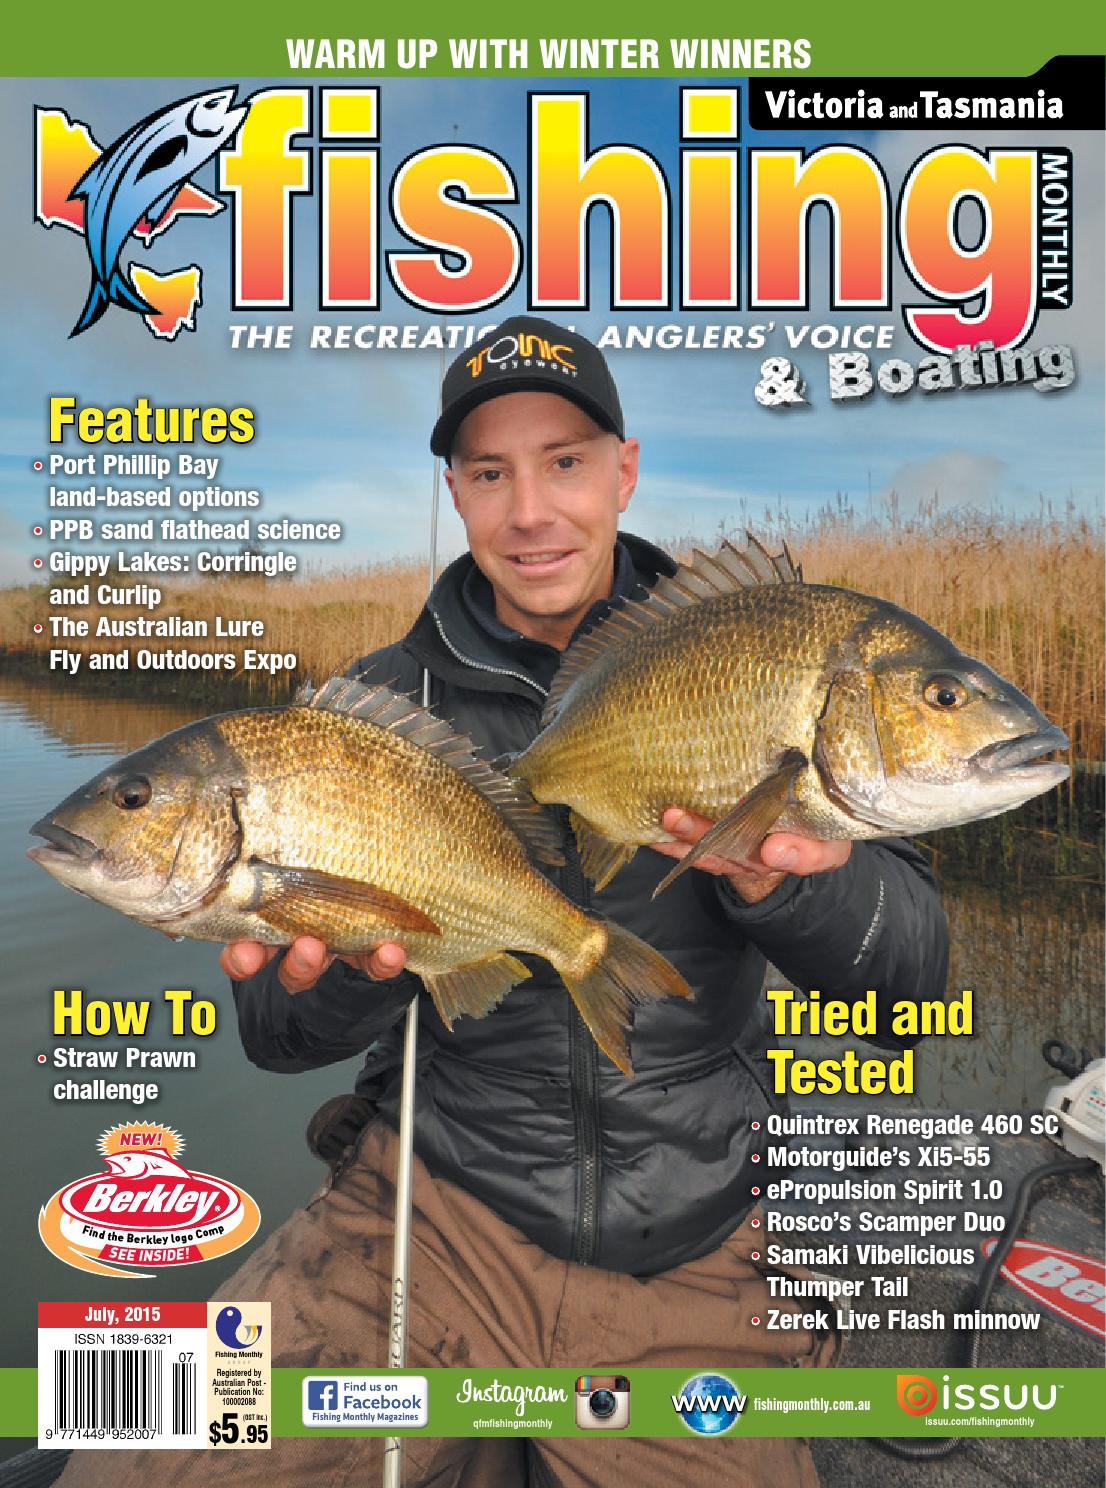 514760ab04a Victoria and Tasmania Fishing Monthly - July 2015 by Fishing Monthly - issuu